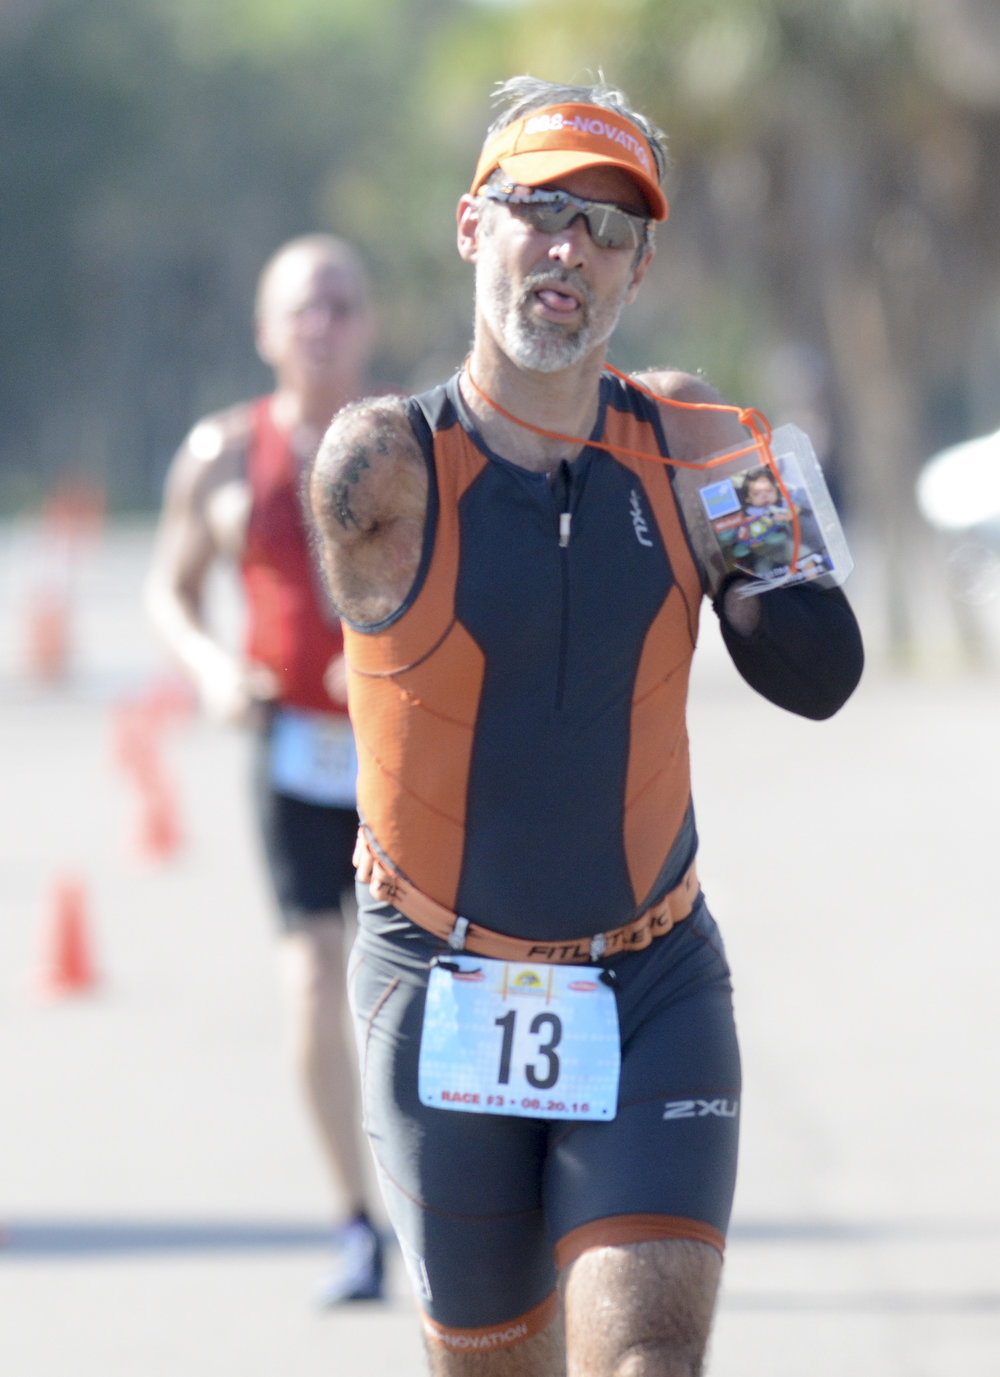 After a 1:26:46 10-kilometer run, Picard jogs the last few meters toward the finish line holding up a photo of a child at Broward Children's Center for whom he ran the triathlon. His total time in the triathlon was two hours and 46 minutes.